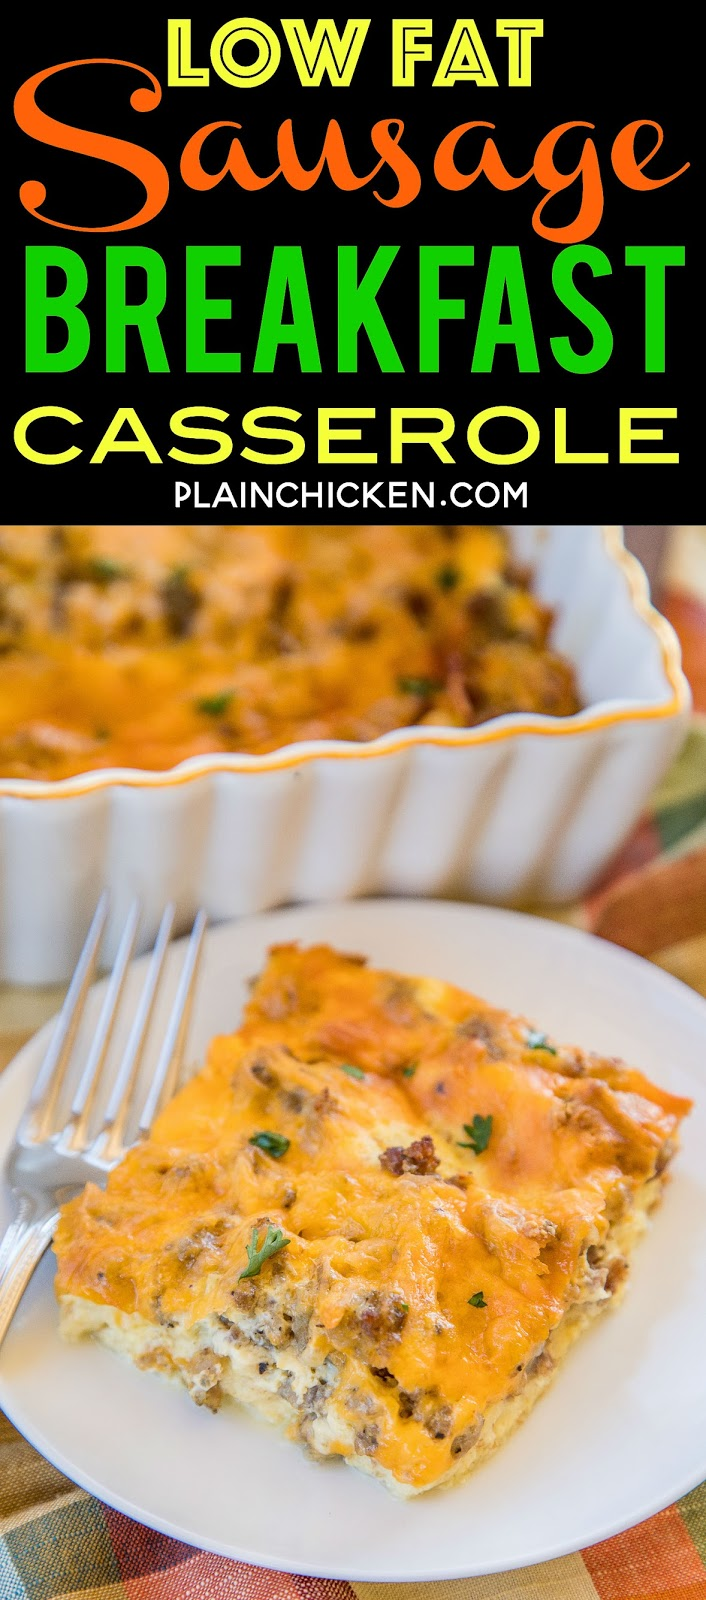 Low Fat Sausage Breakfast Casserole - nobody will ever know this is low-fat! Tastes AMAZING!!! Great make ahead breakfast casserole. Turkey sausage, low-fat cheese, egg beaters, egg, milk and wheat bread. Easy swaps that lower the fat but keep all the flavor. SO good!! #lowfat #breakfast #casserole